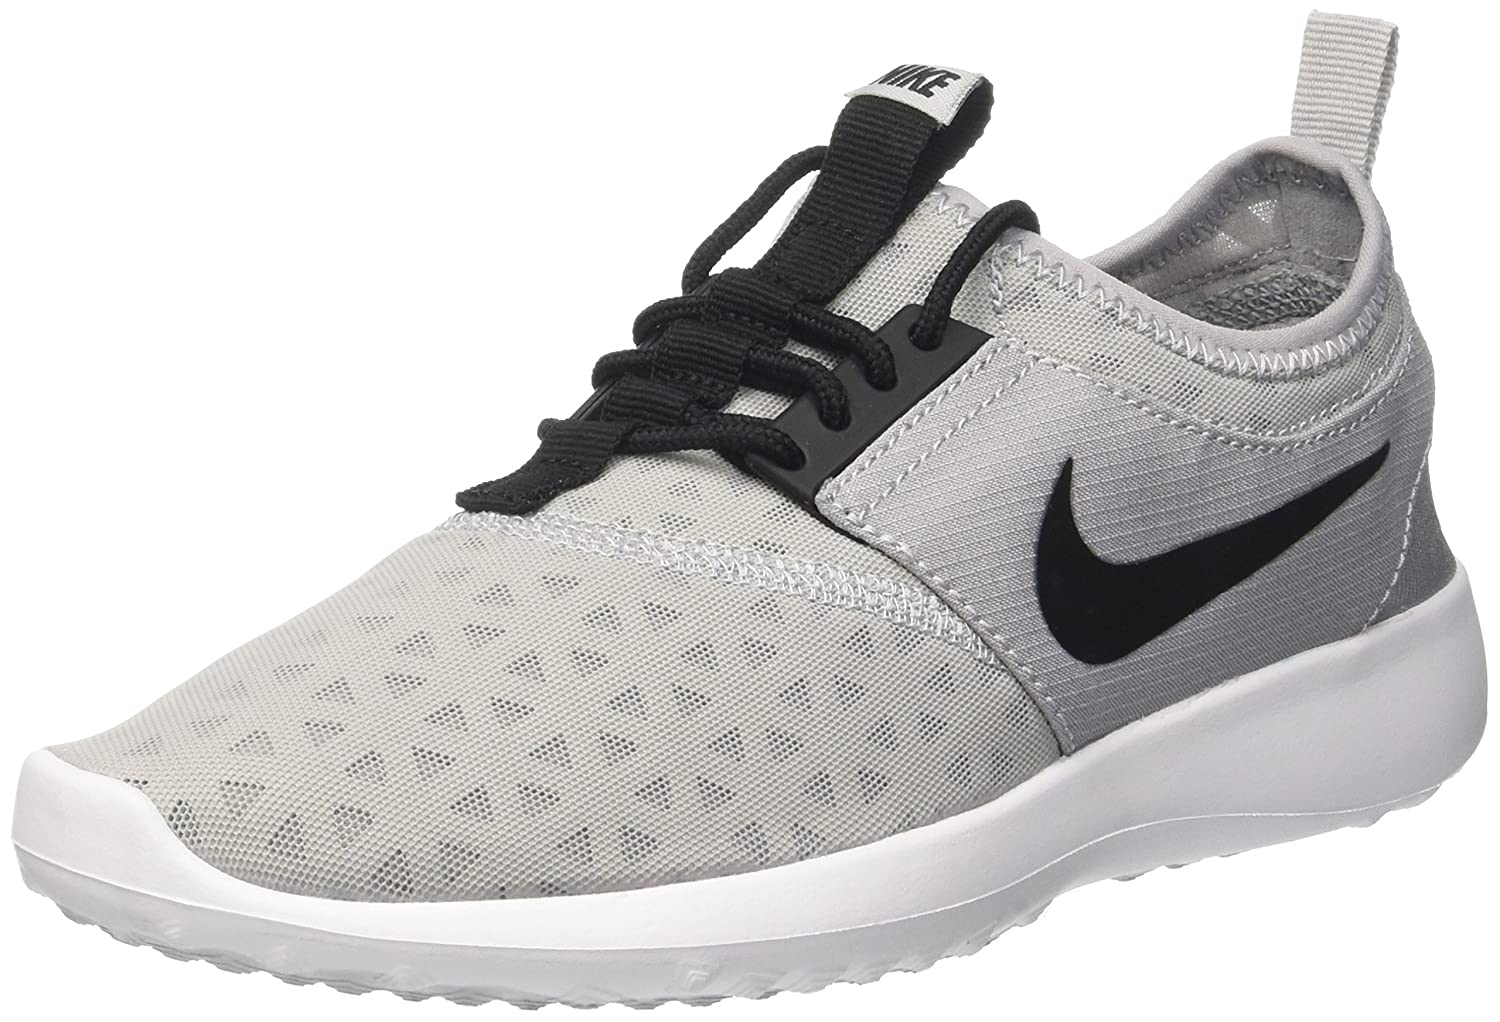 NIKE Women's Juvenate Running Shoe B01MU9BR6Q 7.5 B(M) US|Wolf Grey/Black/Wolf Grey/White